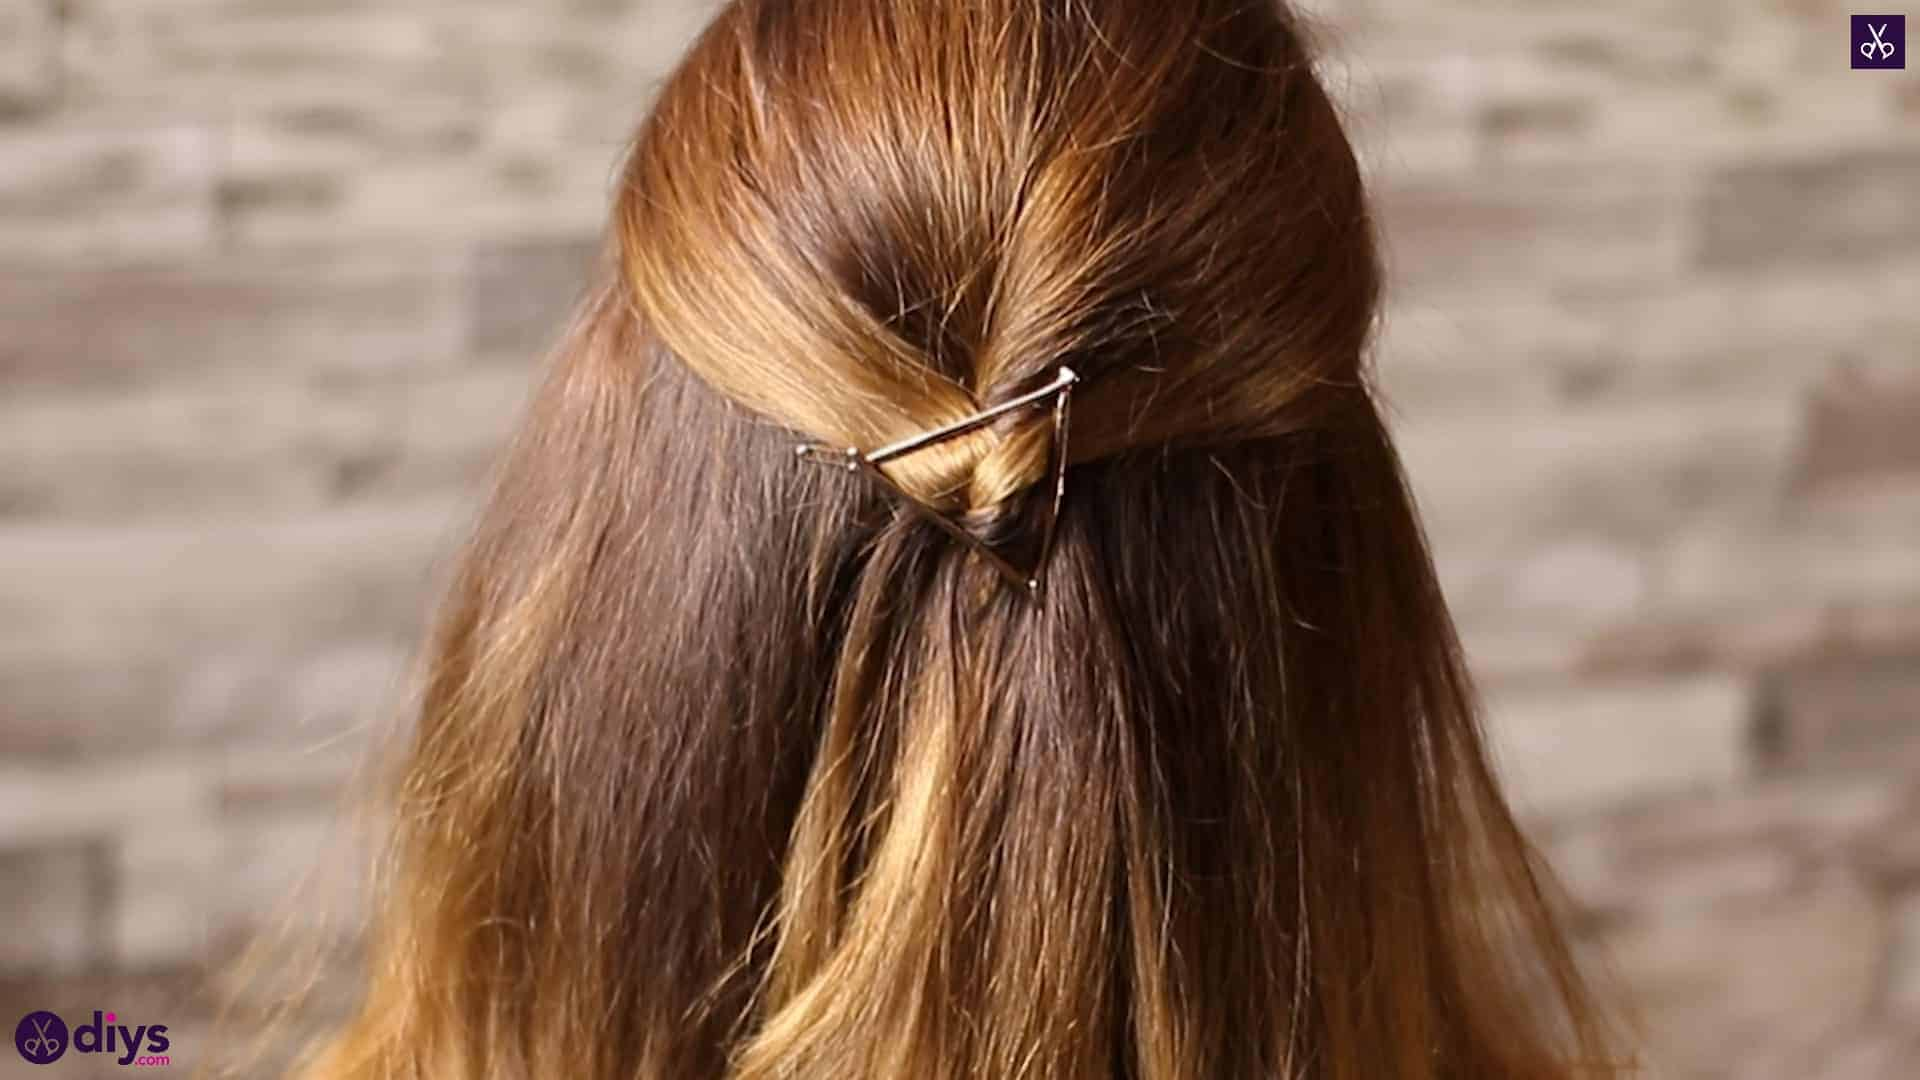 Updo hairstyle for wavy hair 36